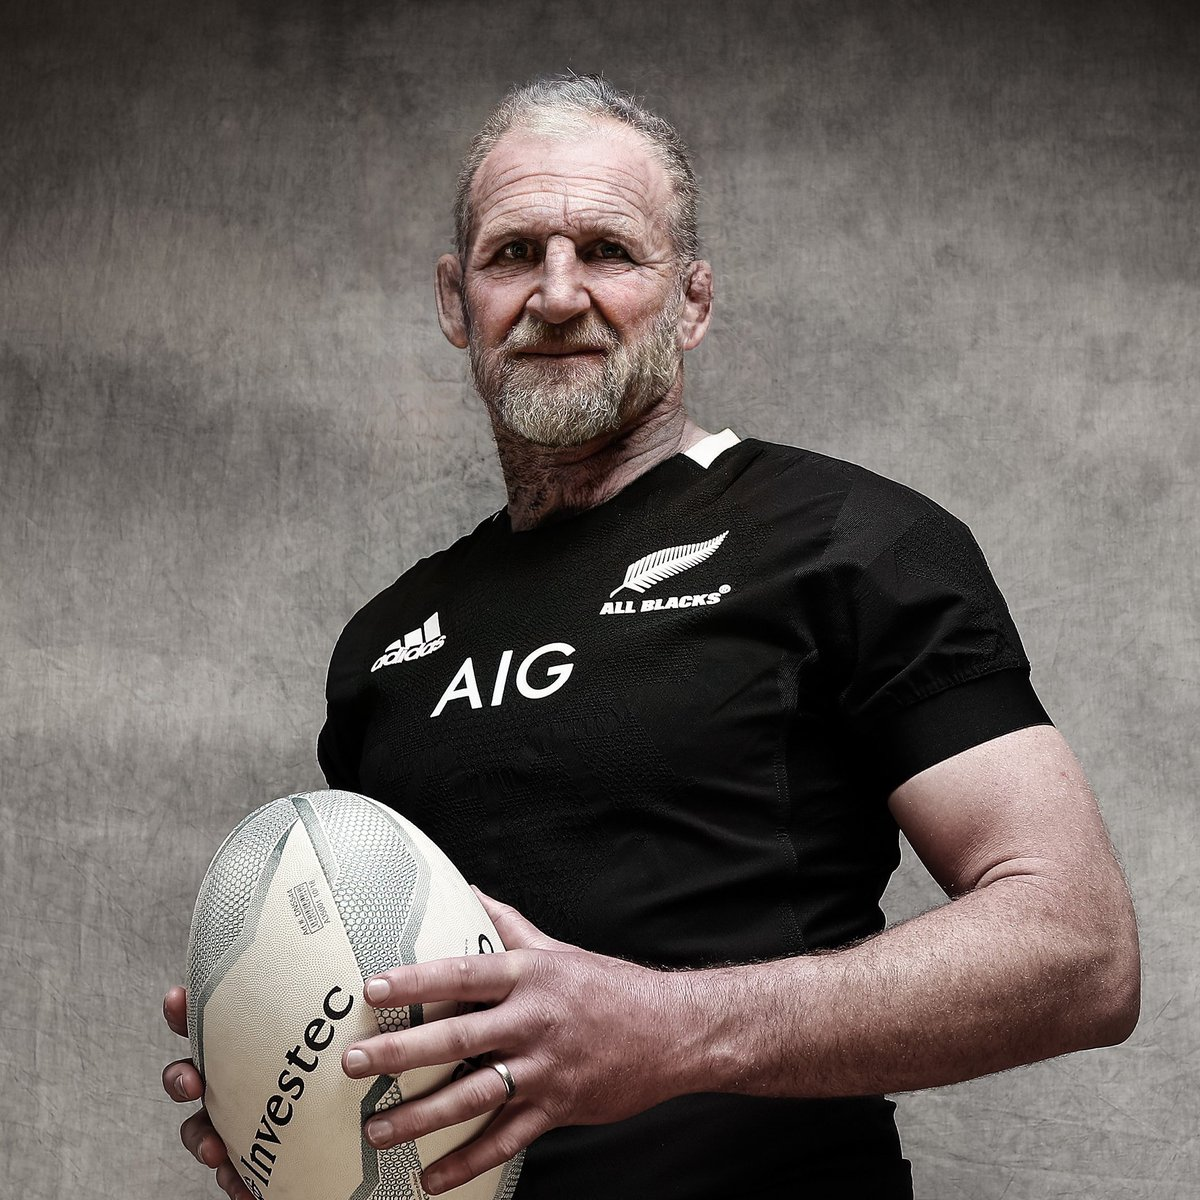 test Twitter Media - The year is 2047. As the World Cup approaches, a few familiar faces put forward their case for selection... 👴  #RWC2047 https://t.co/OEQs9AzUtJ